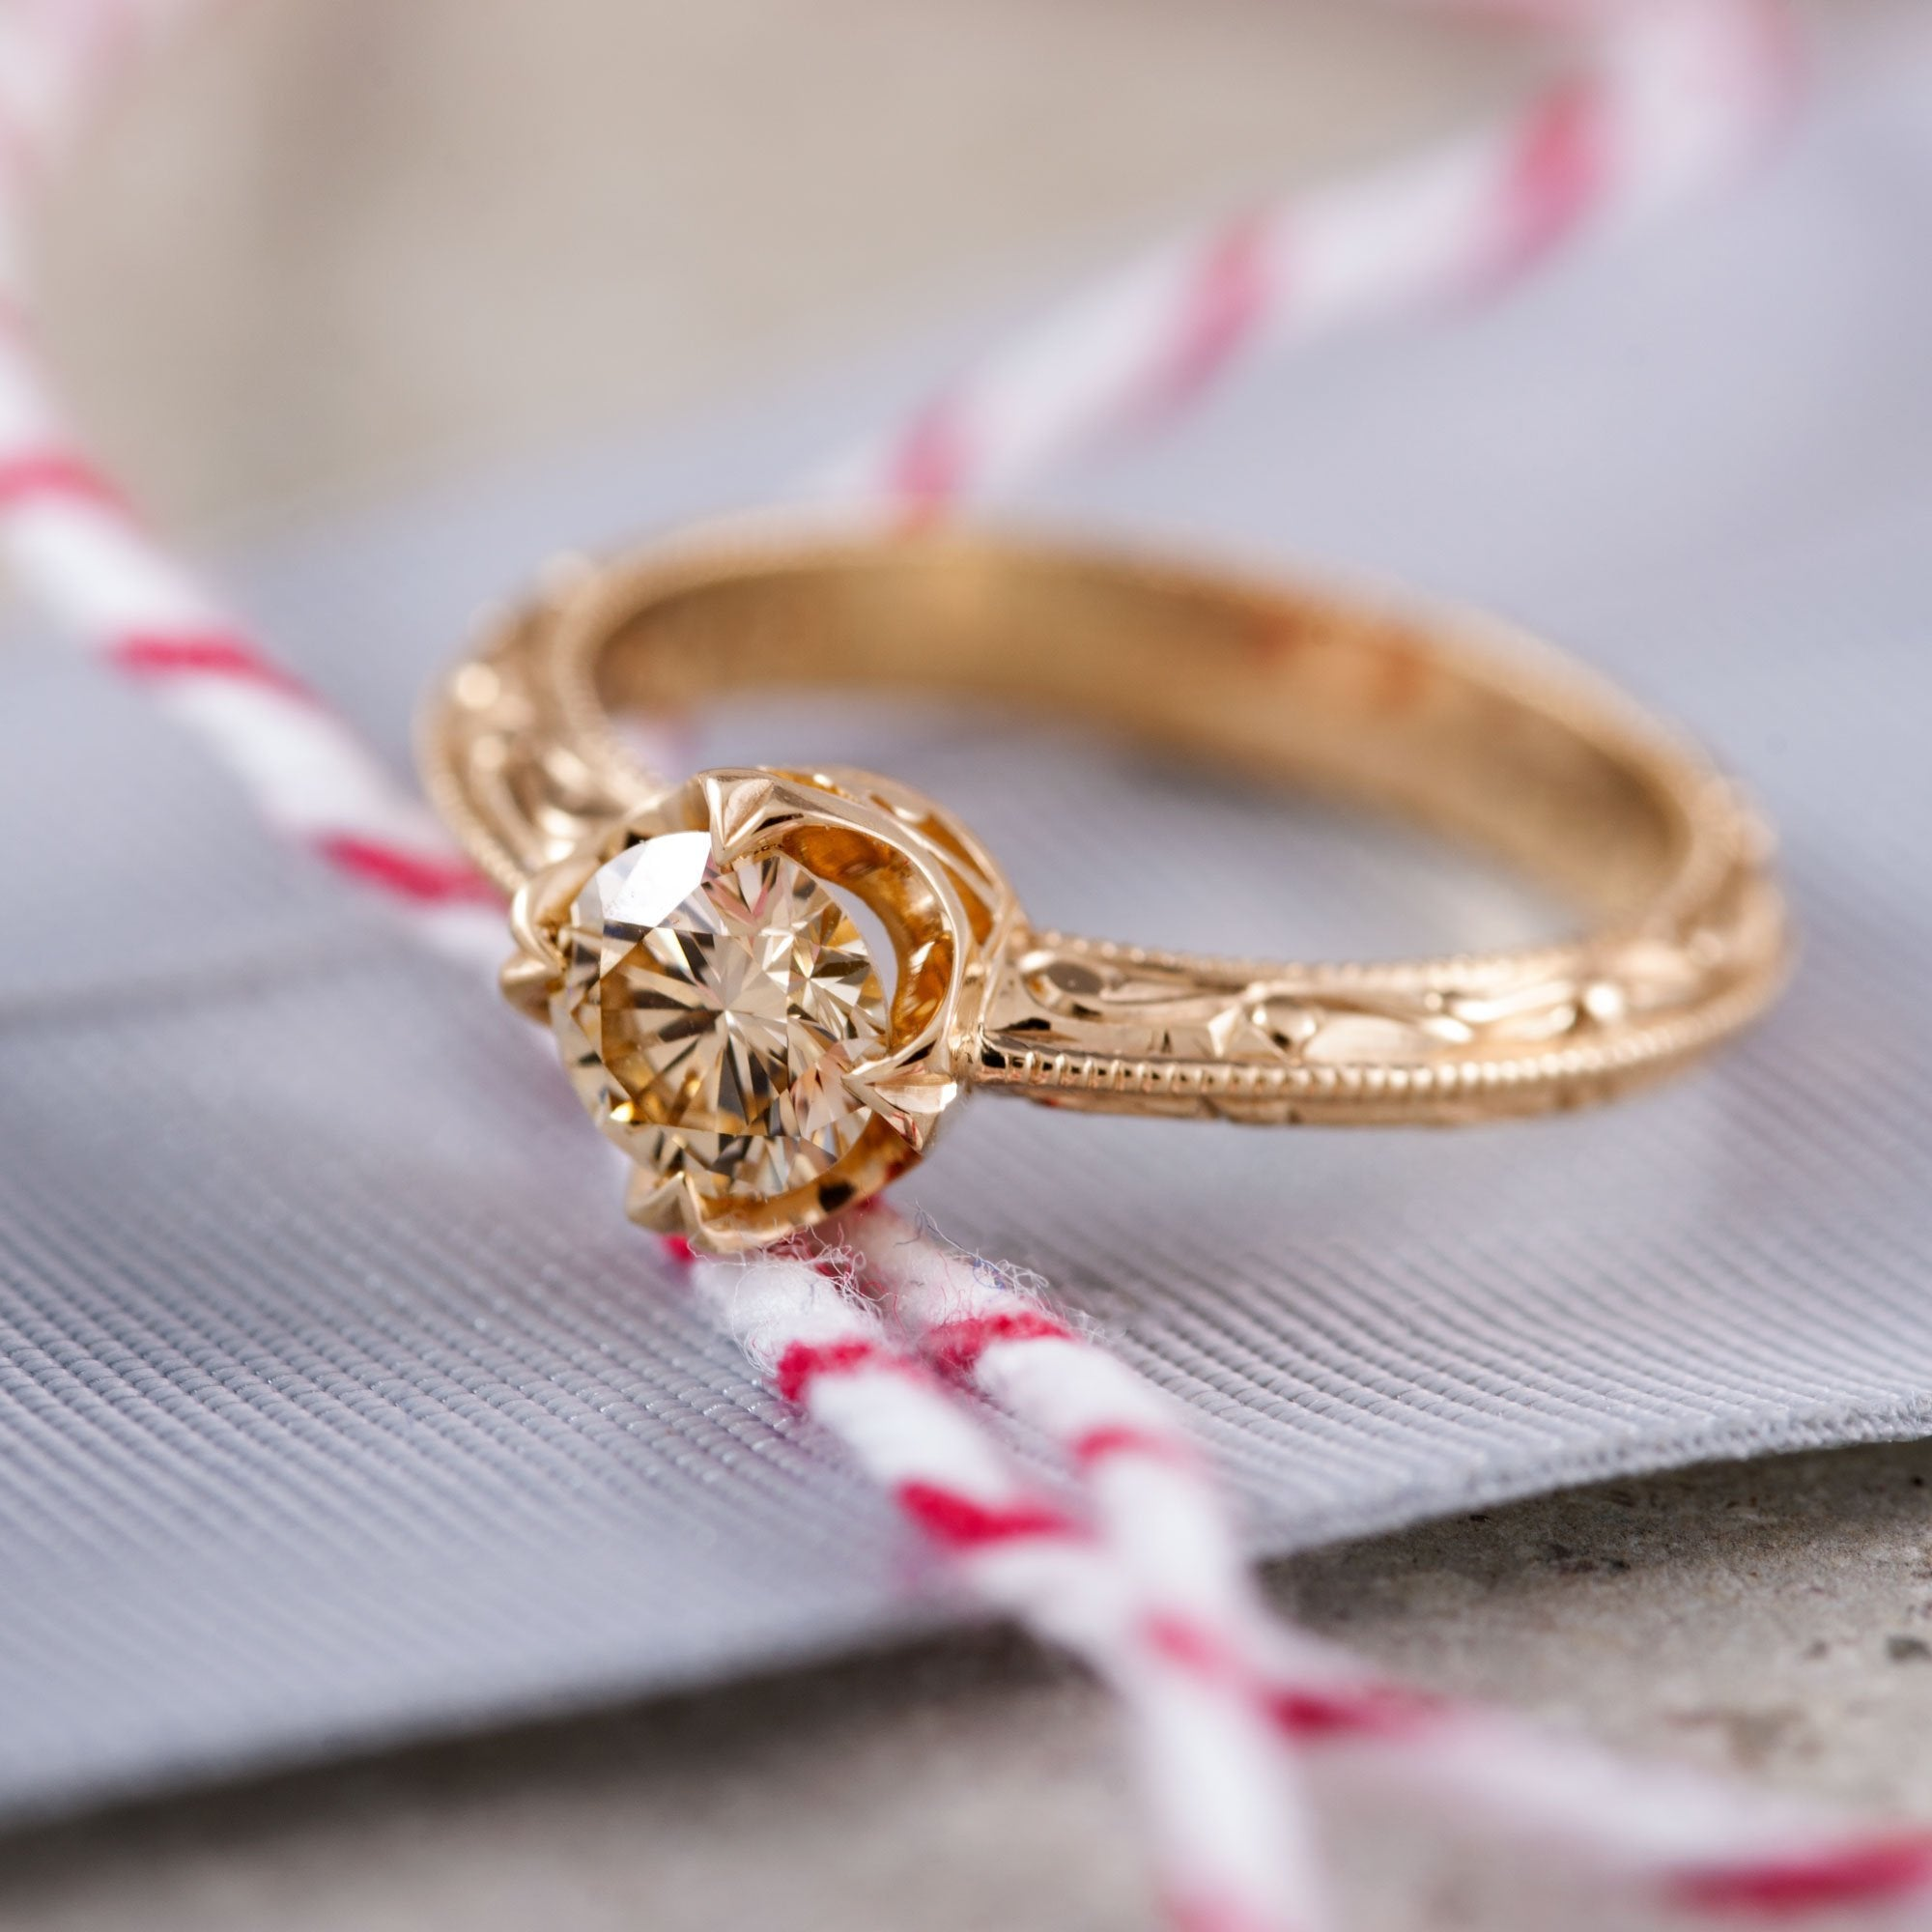 Yellow Compass Diamond Diamond Engagement Ring - Era Design Vancouver